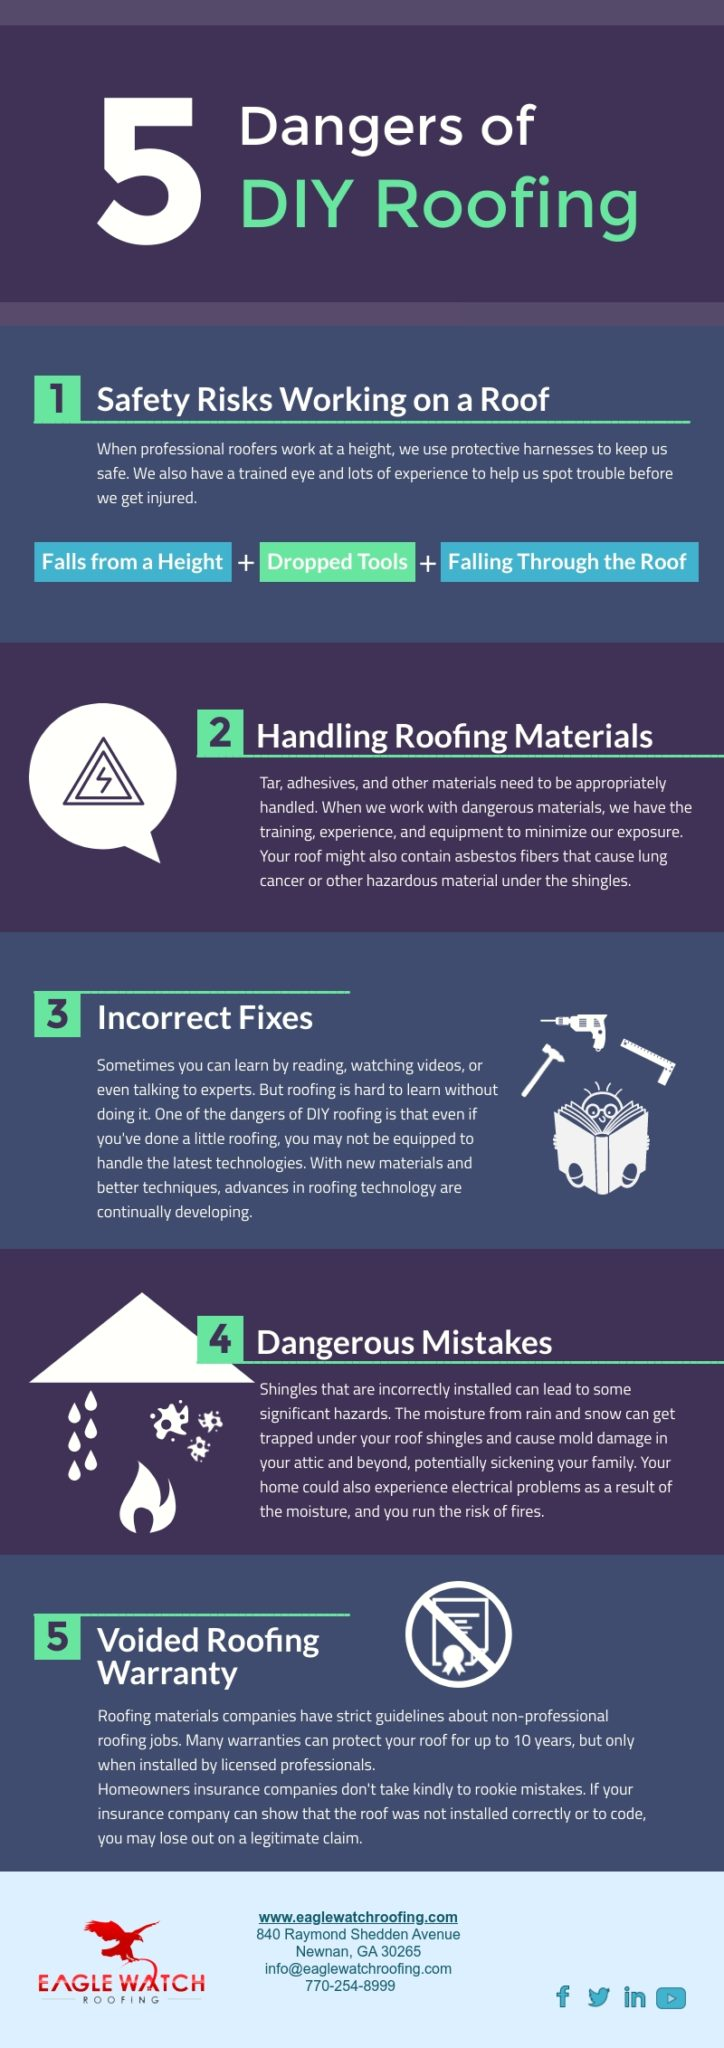 The Dangers of DIY Roofing [infographic]